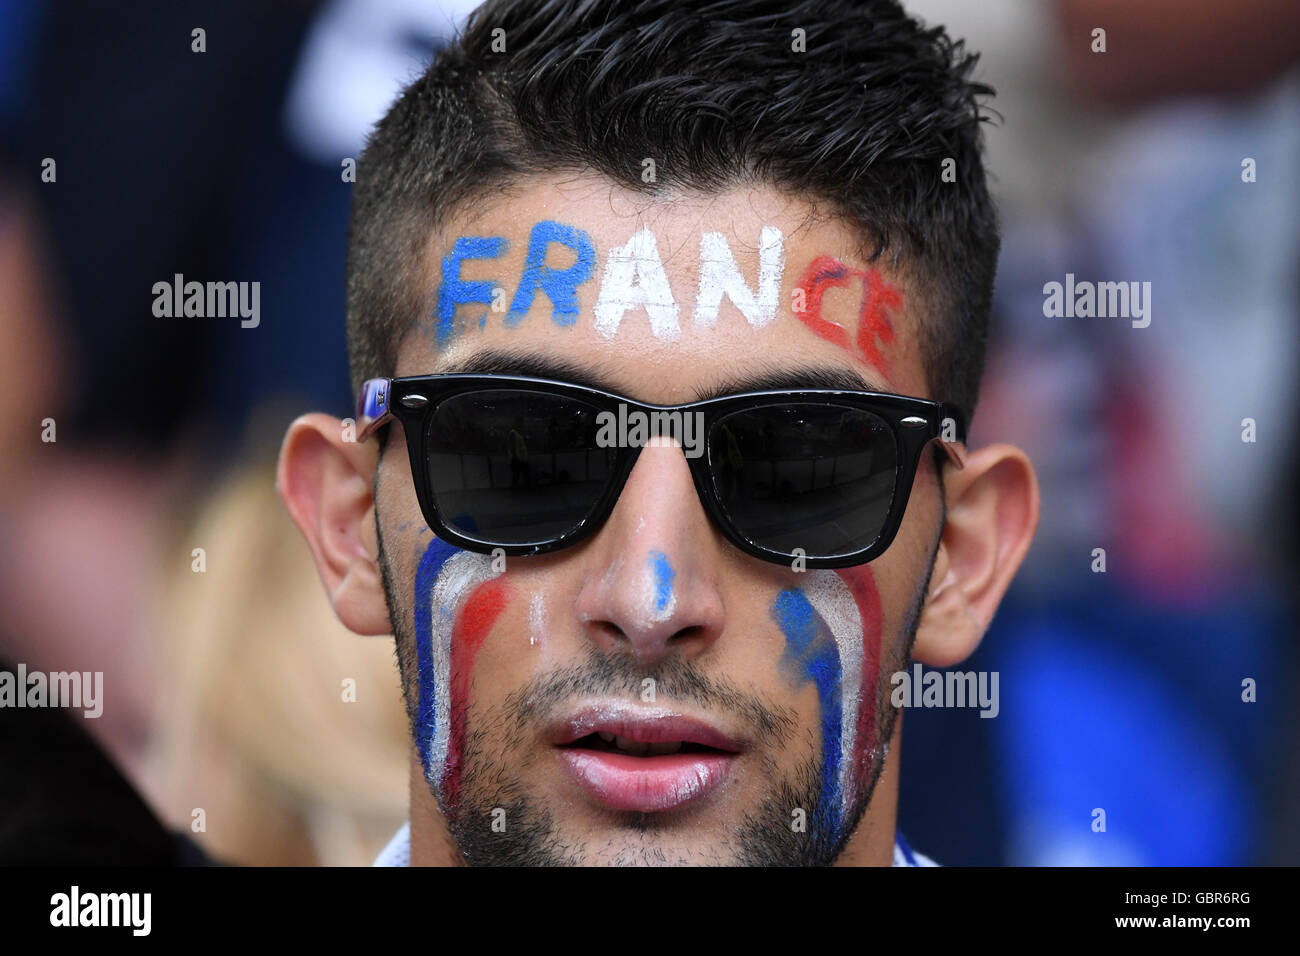 Supporters (France) ; July 07, 2016 - Football : Uefa Euro France 2016, Semifinal, Germany 0-2 France at Stade Velodrome, - Stock Image